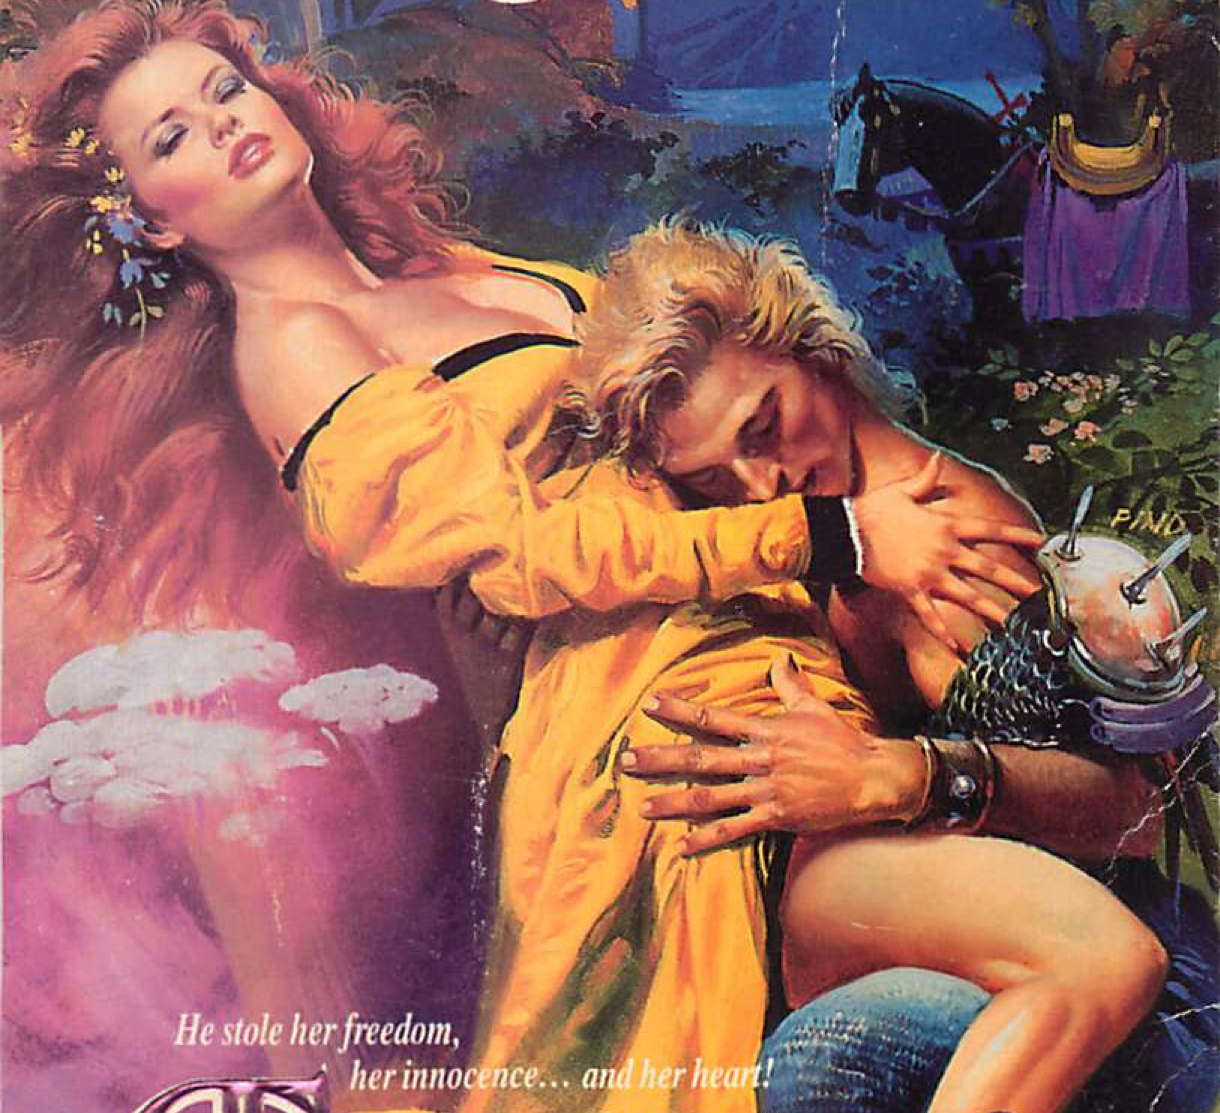 A red headed woman wearing purple eyeshadow eyes half closed reclined at an impossible angle over the pink cloudy jellyfish things while a guy wearing a shoulder spike is doing something angsty in her lap judging by his facial expression